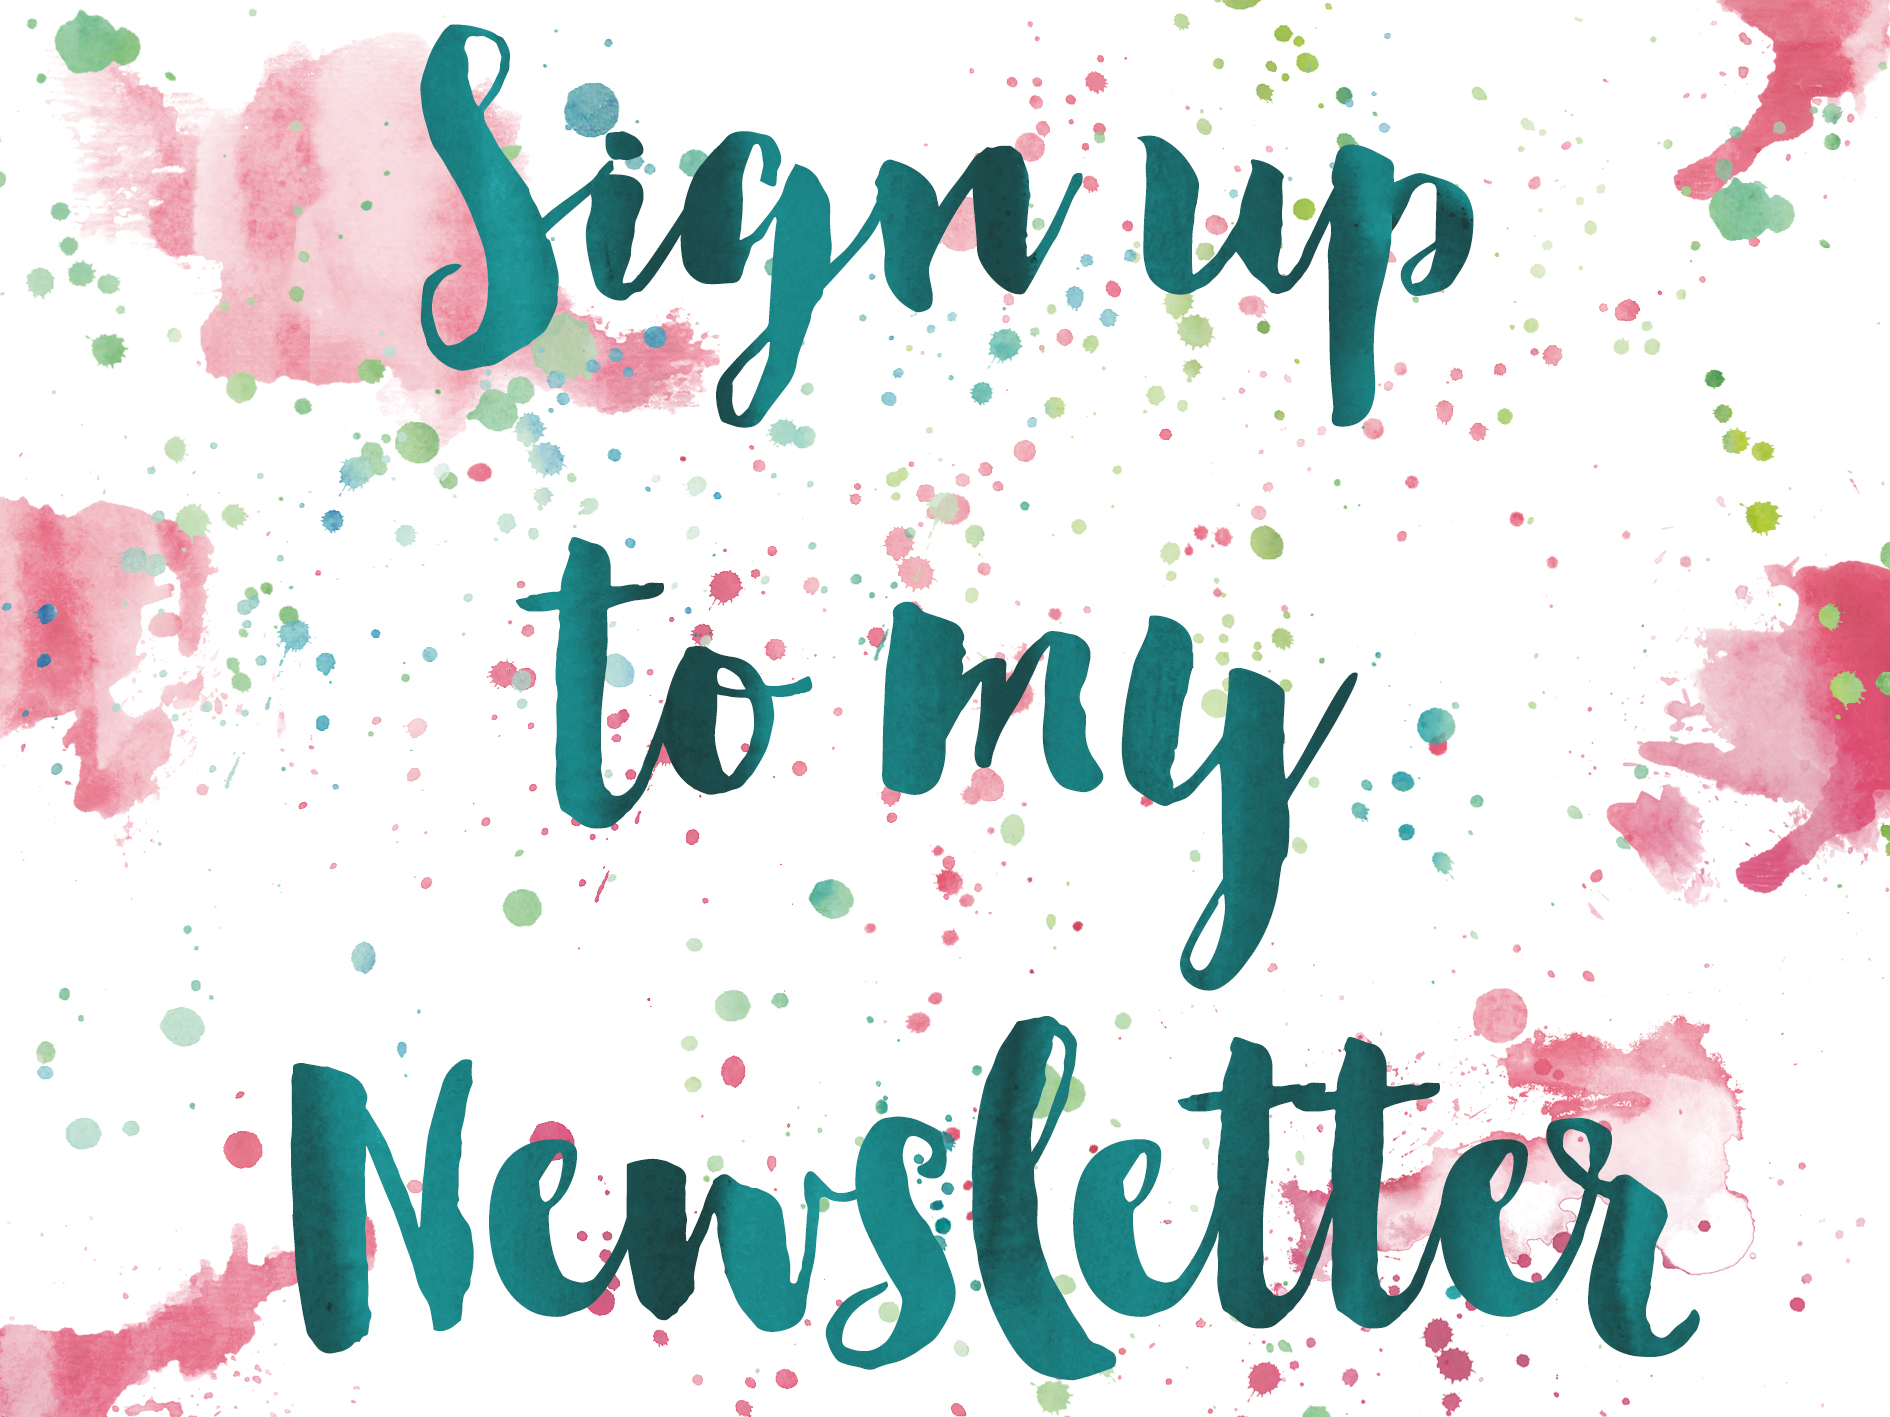 Sign up to my newsletter